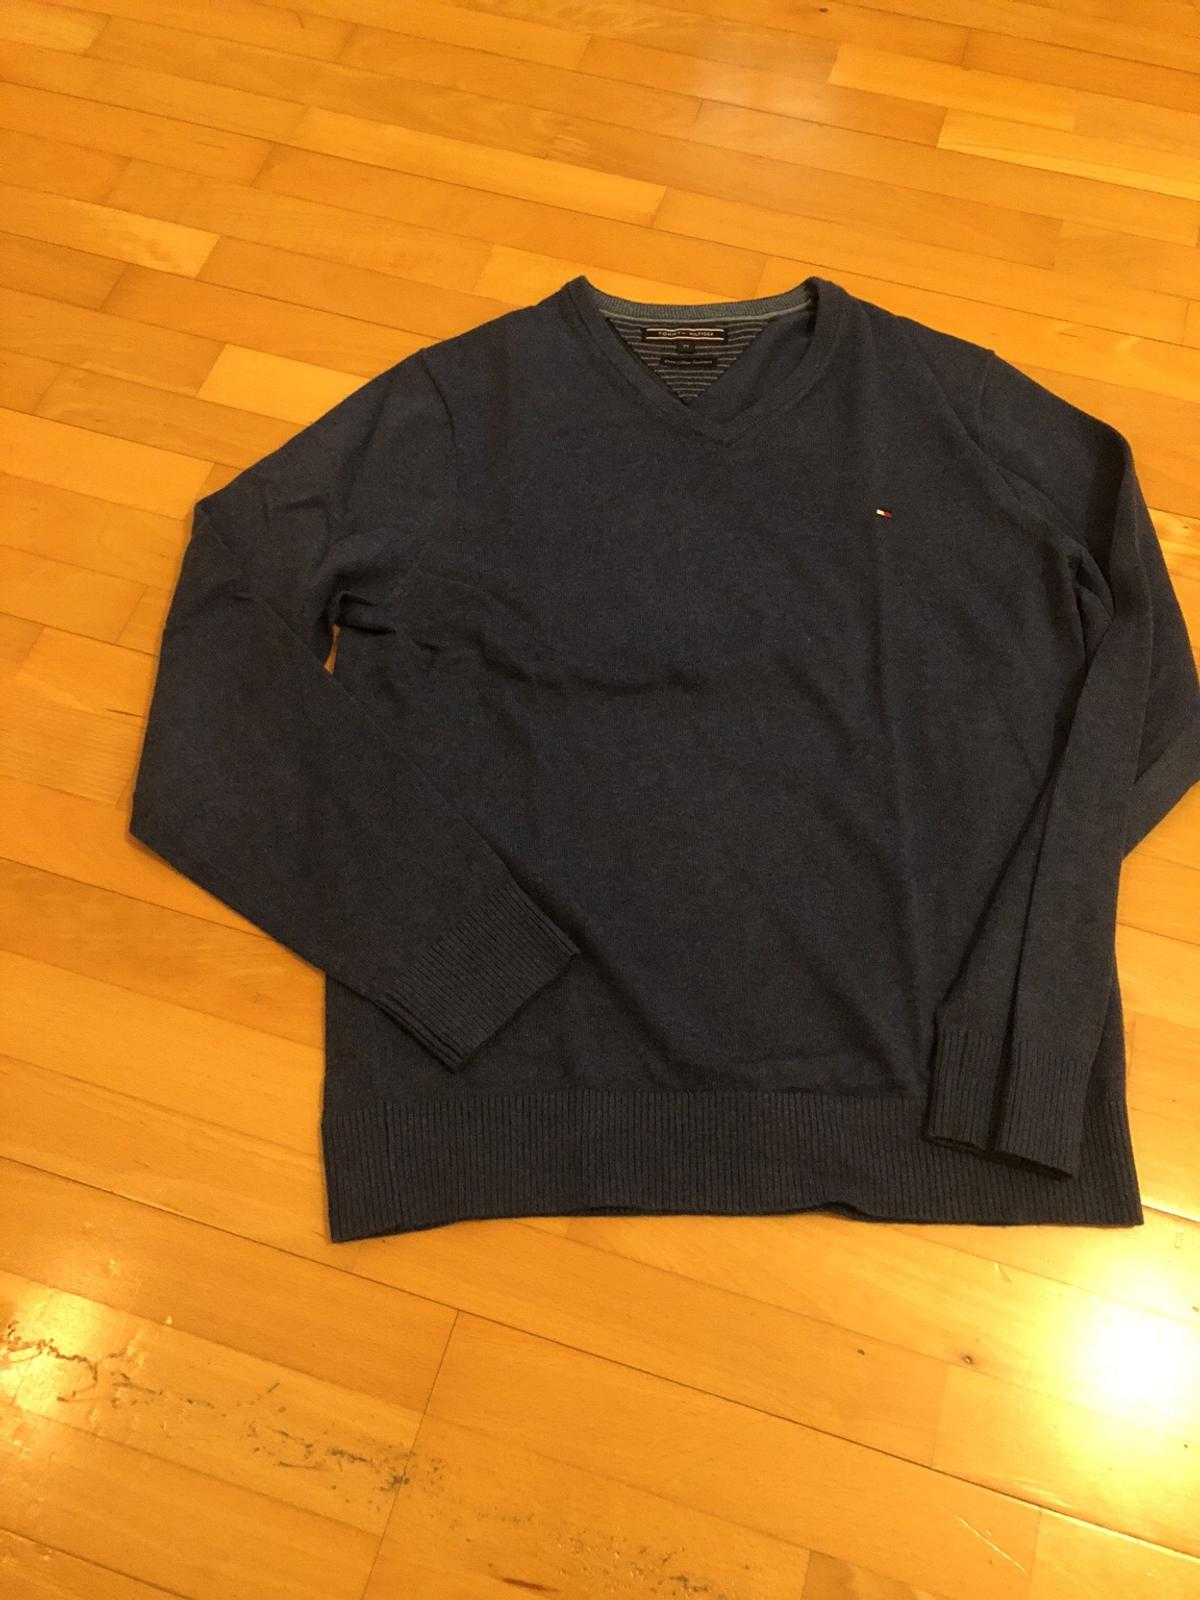 e102e8901c09b4 Tommy Hilfiger Herren Pullover in 6330 Kufstein for €40.00 for sale ...